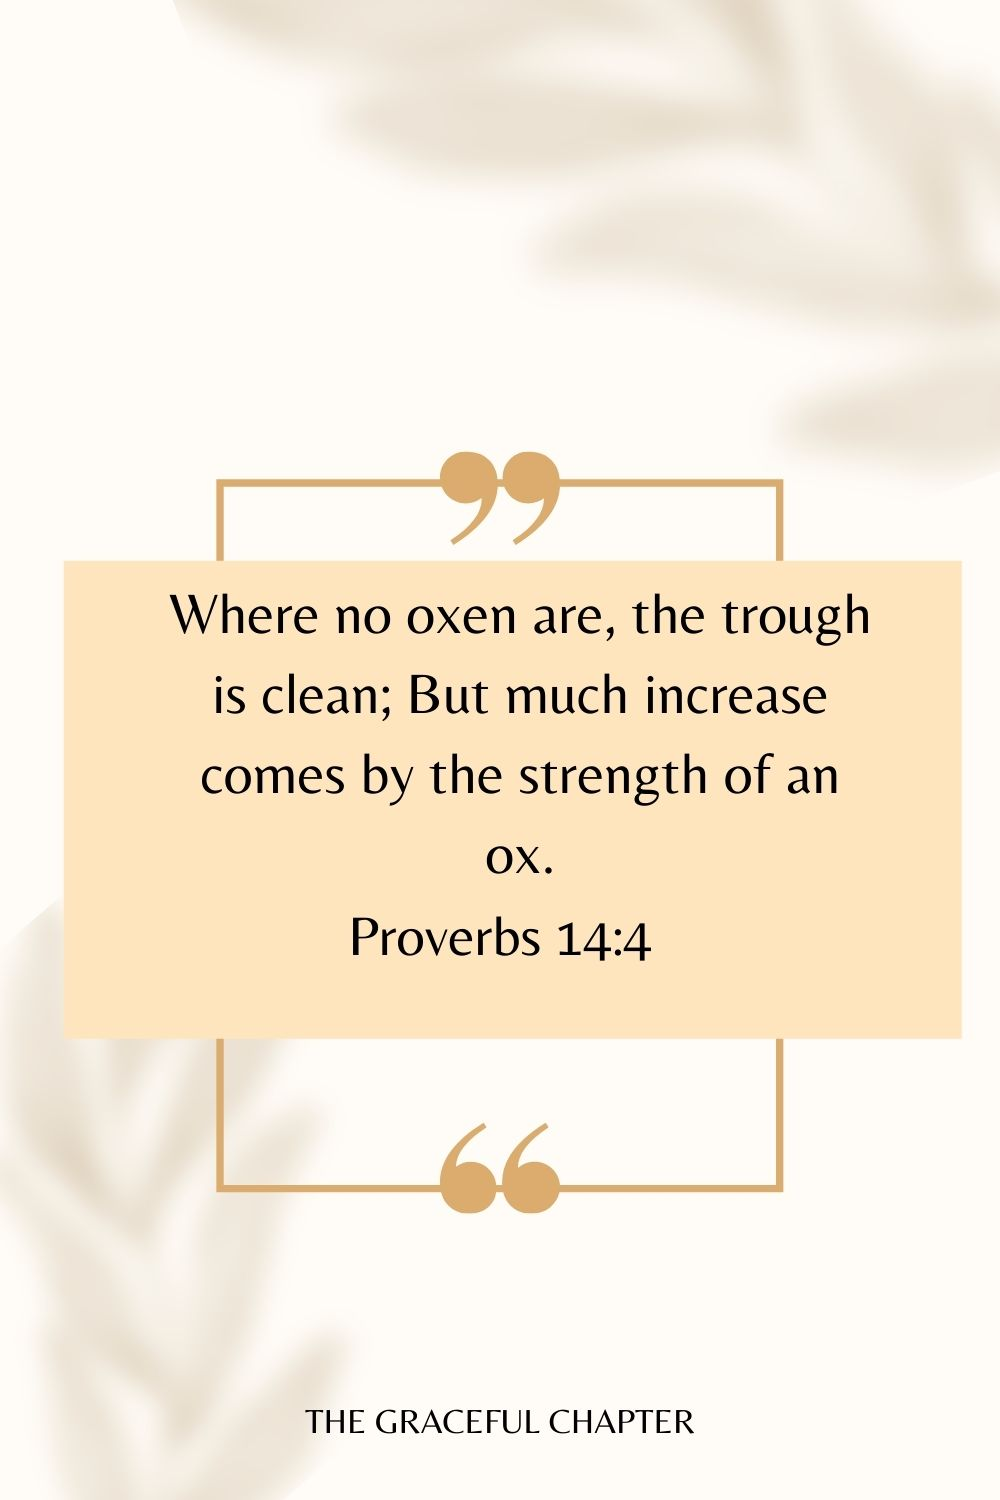 Where no oxen are, the trough is clean; But much increase comes by the strength of an ox. Proverbs 14:4